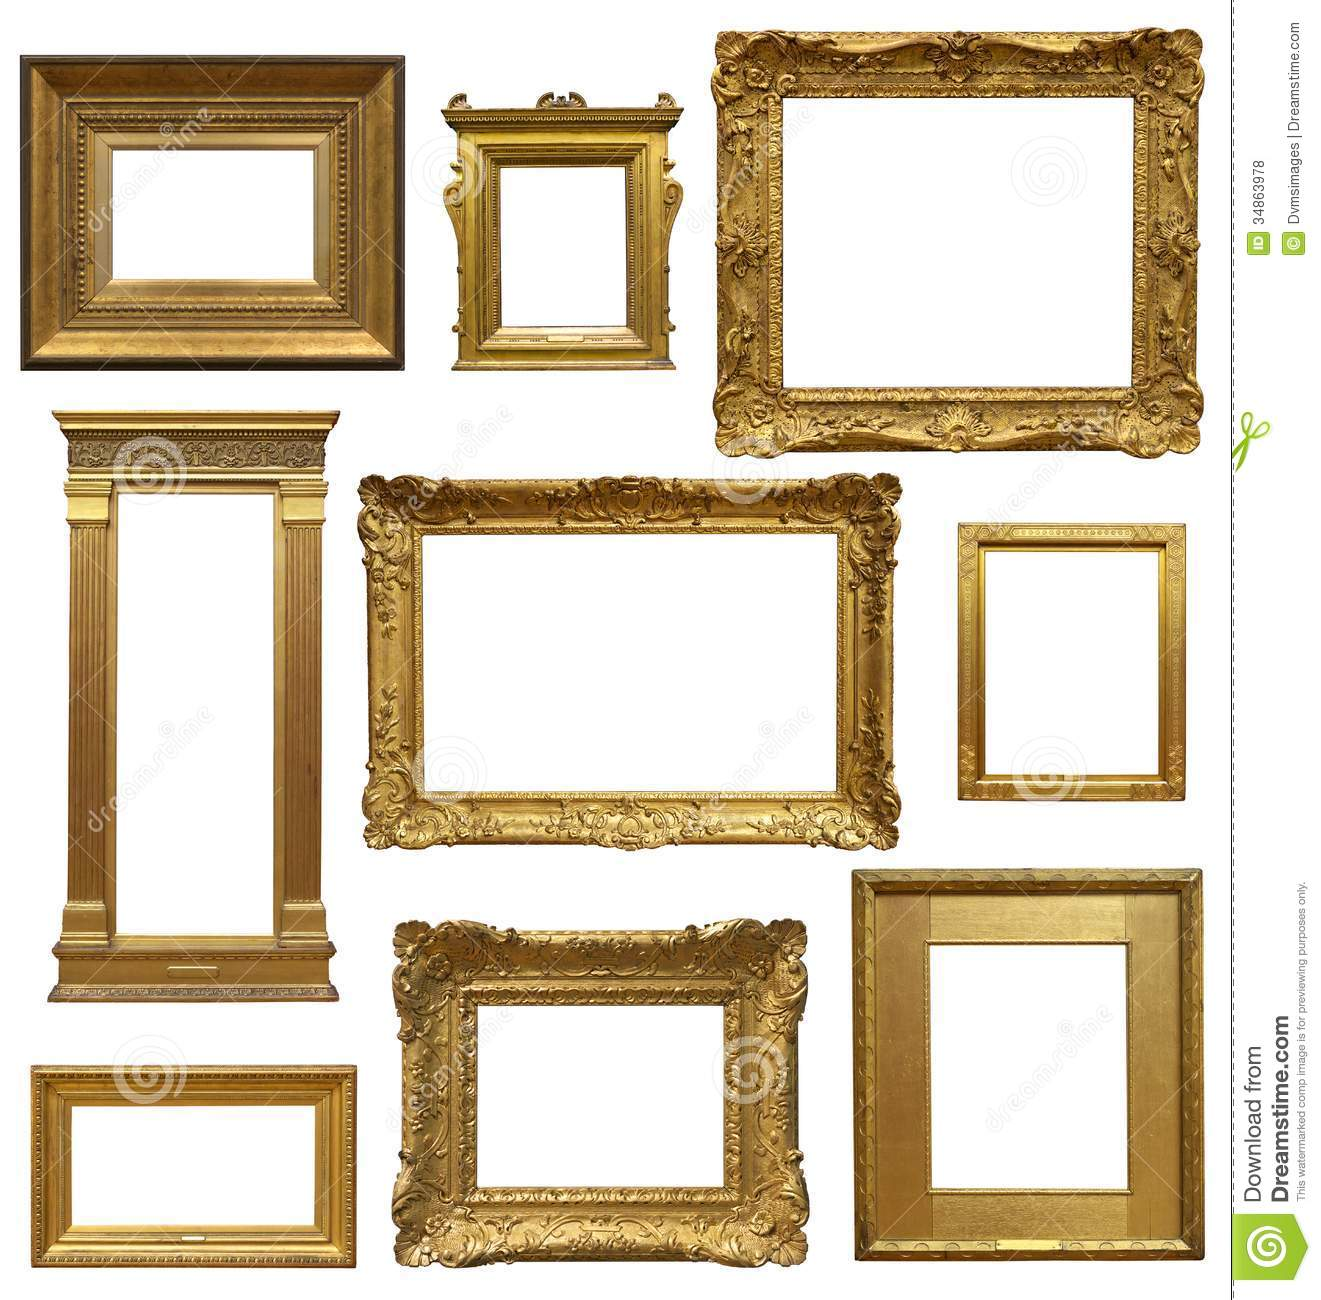 Frames Stock Images - Download 35,731 Photos